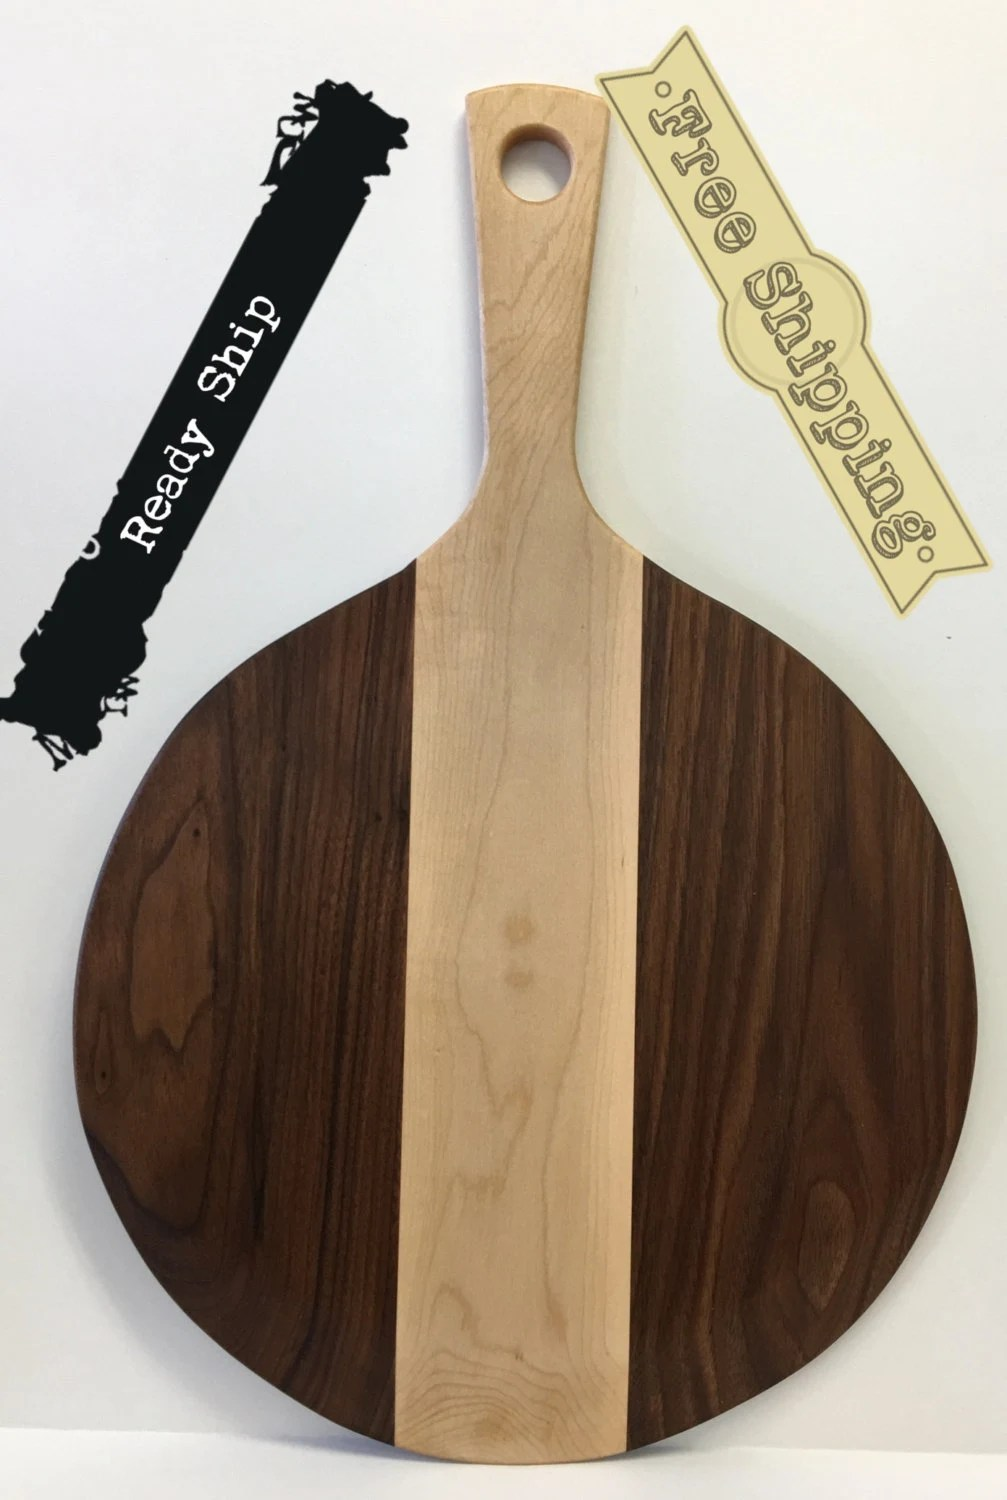 Pizza peel paddle BLACK WALNUT and Maple,  22  long, 14 across, 8 handle, 3/8 thick (inches).